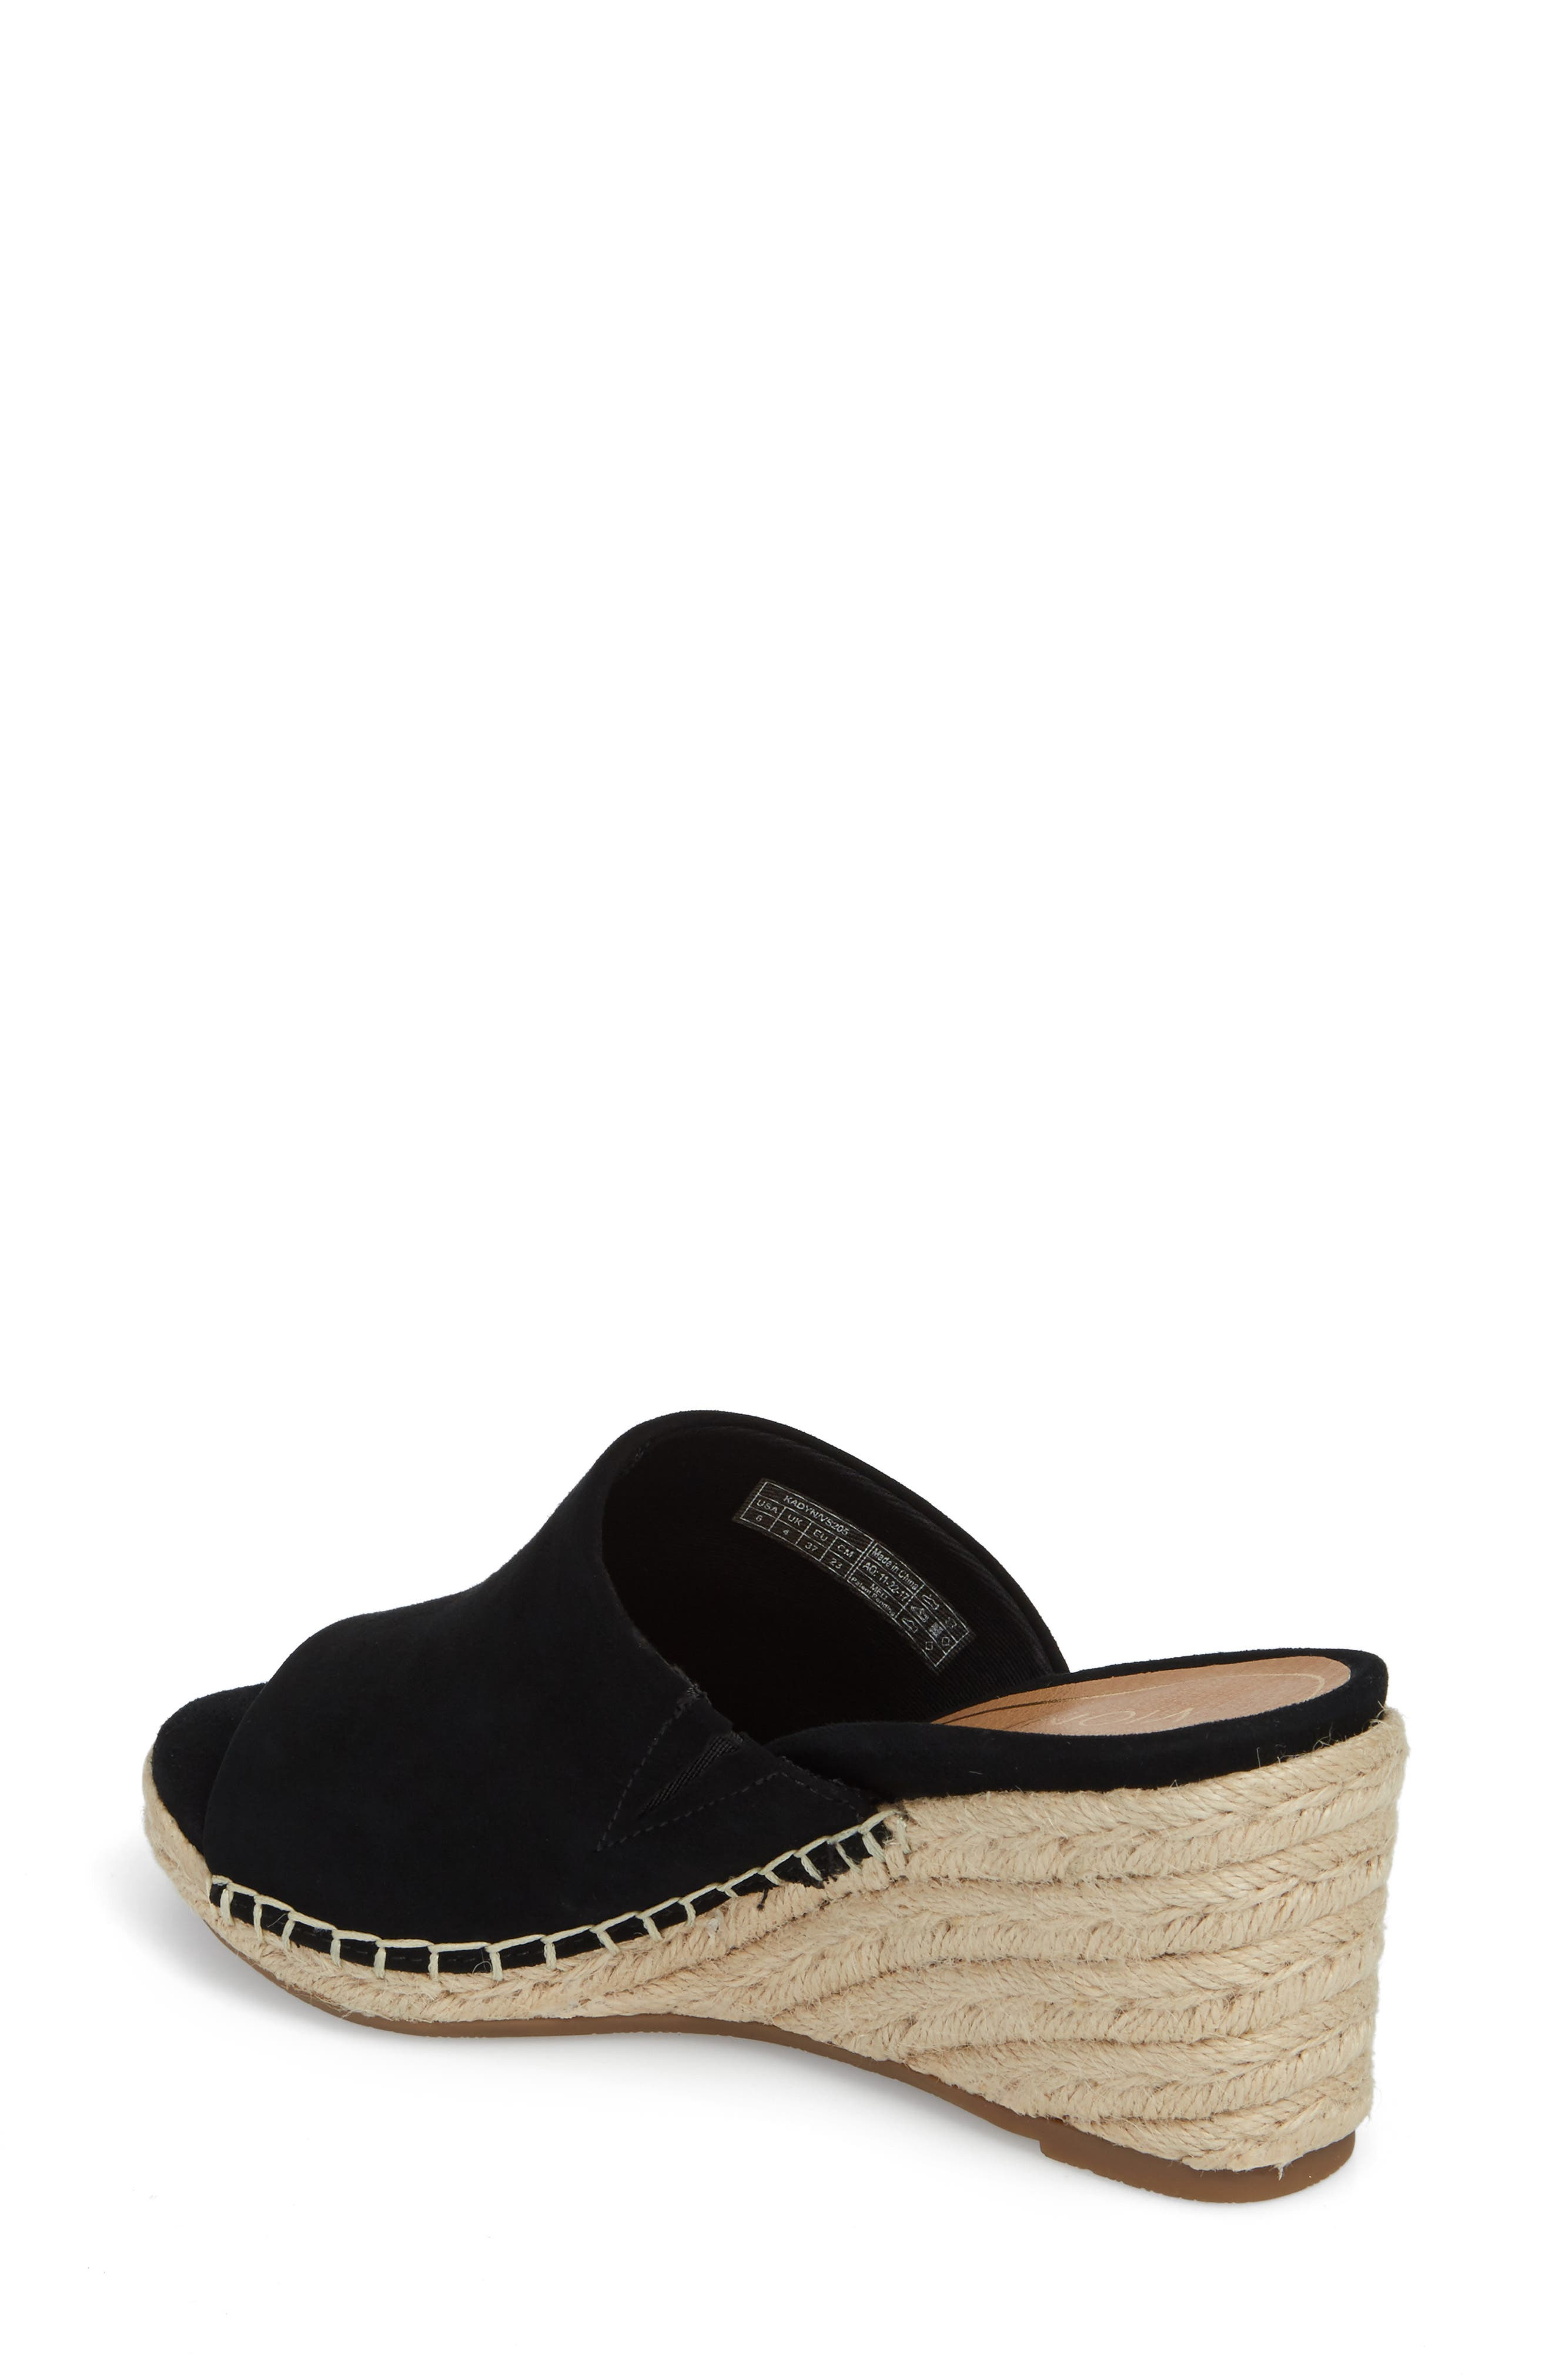 Kadyn Espadrille Wedge Sandal,                             Alternate thumbnail 2, color,                             BLACK SUEDE